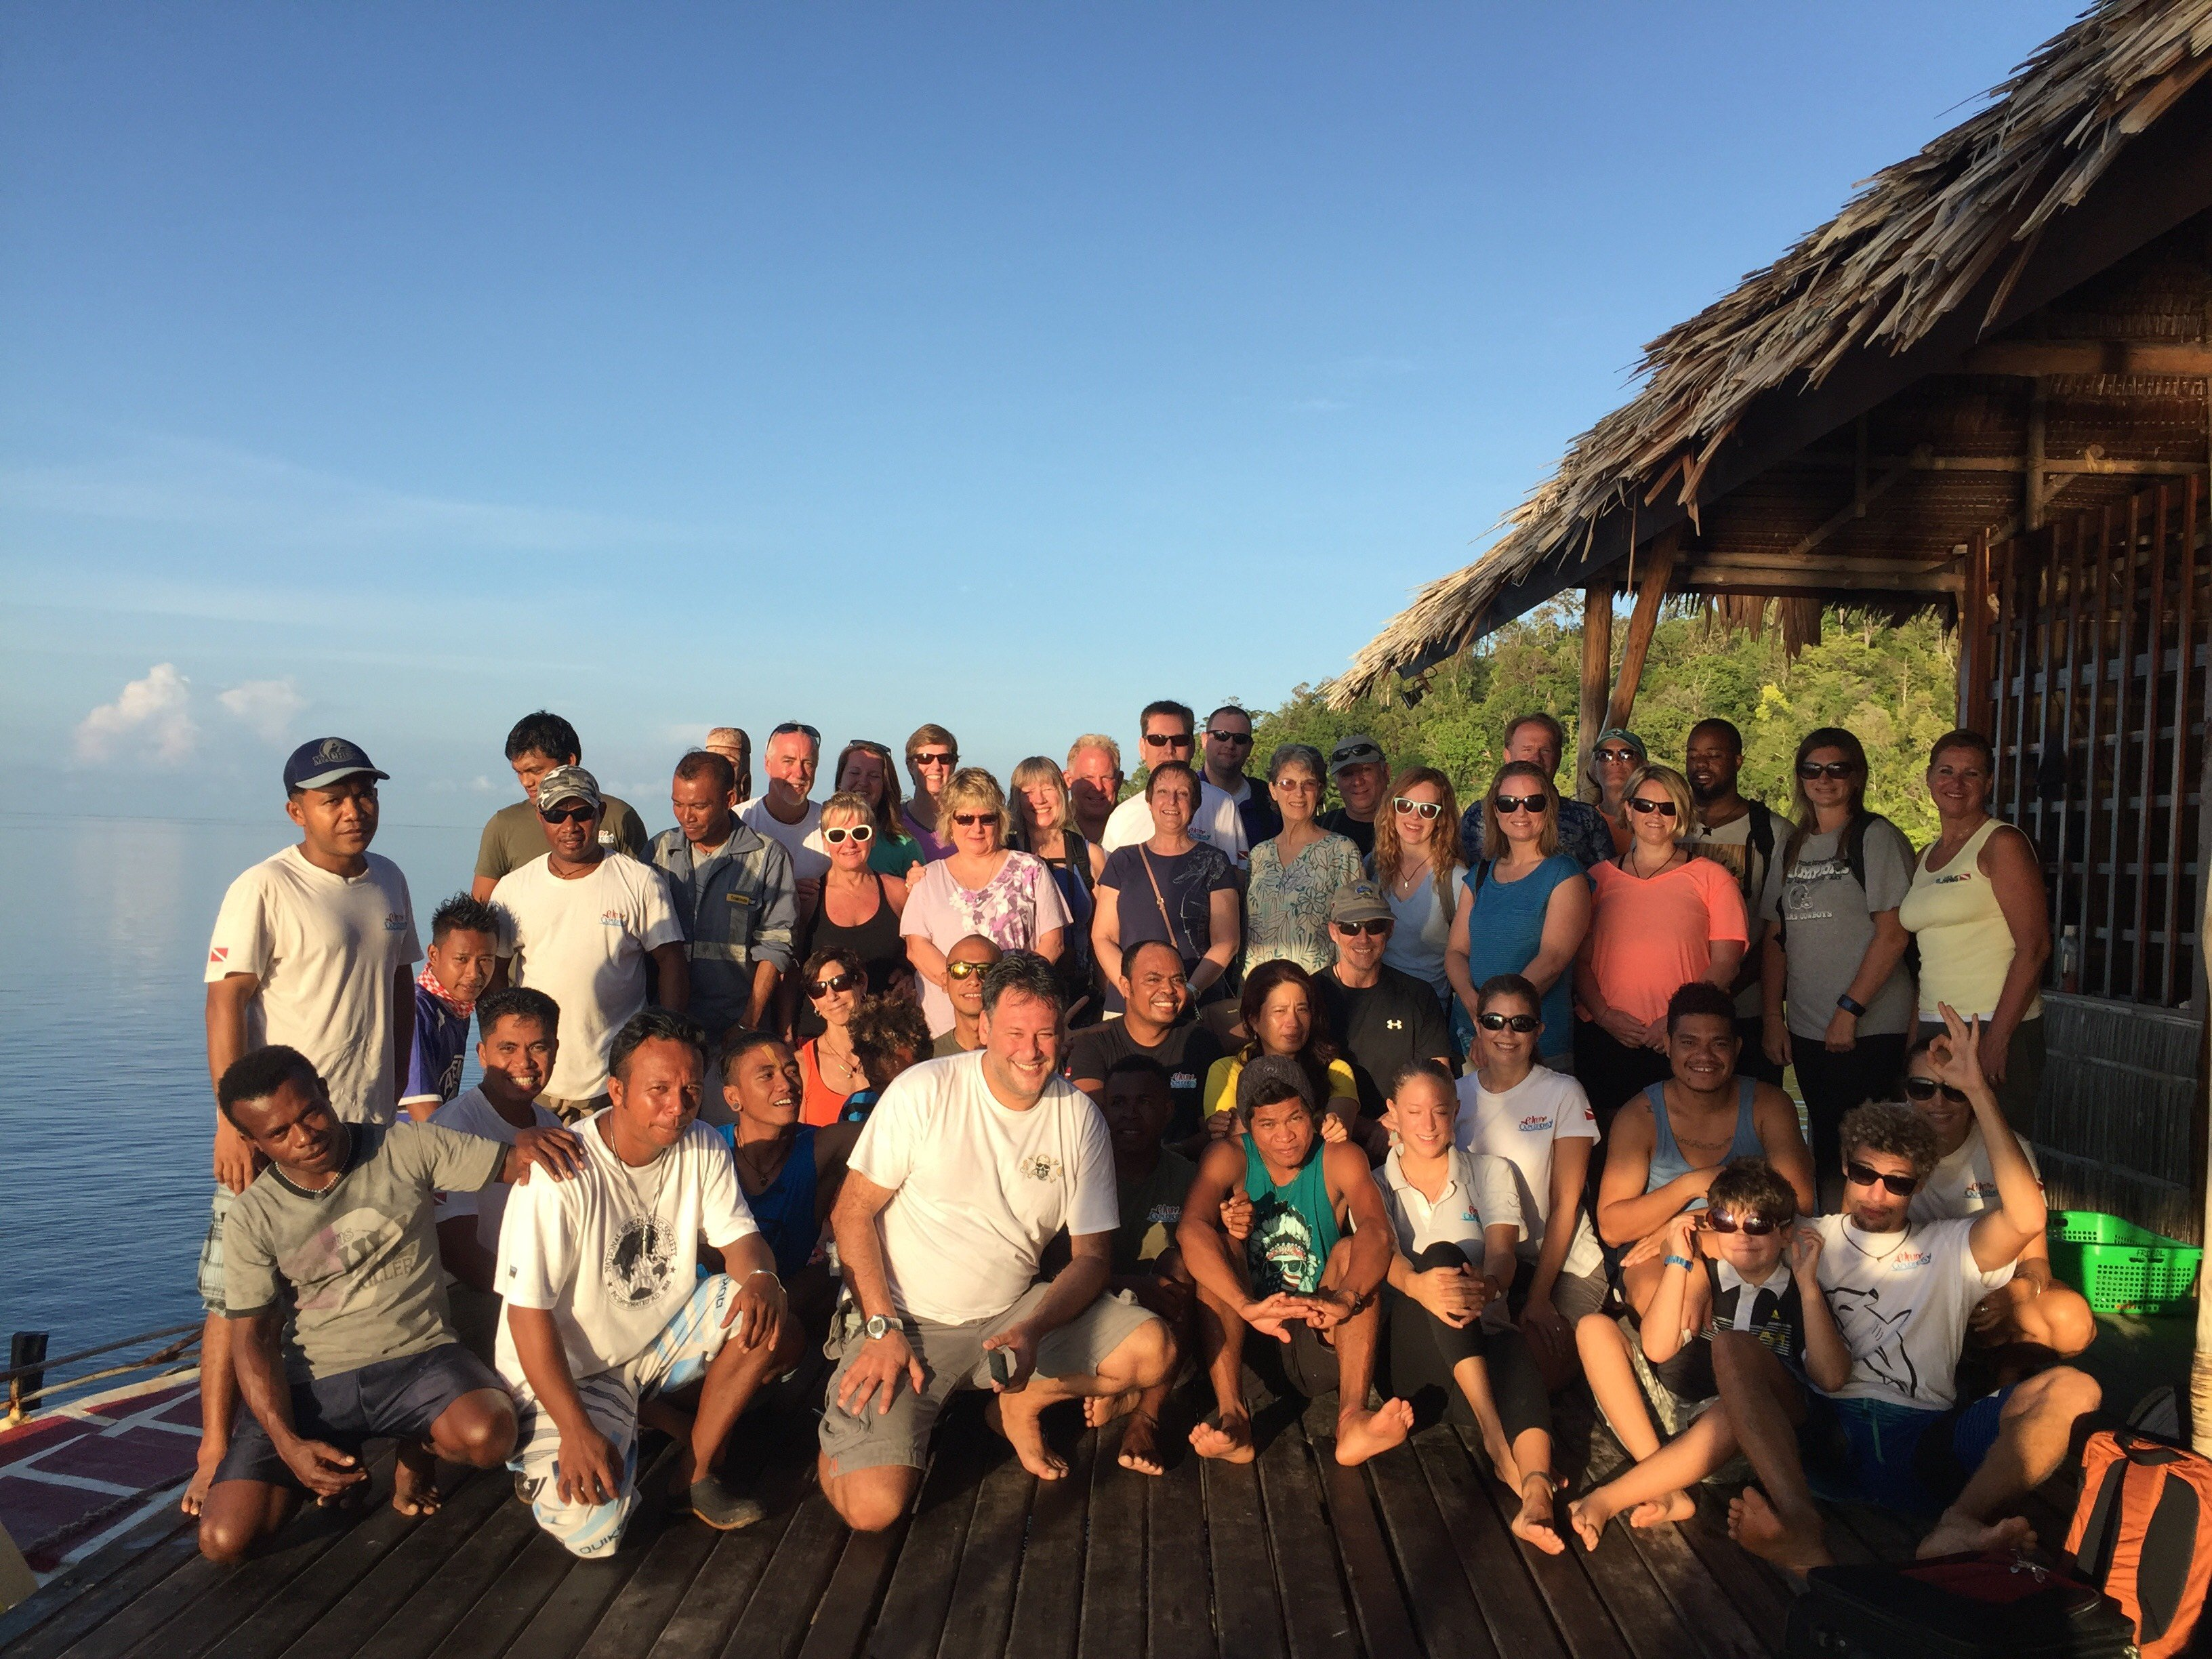 group photo of guests and employees of our dive resort in Raja Ampat